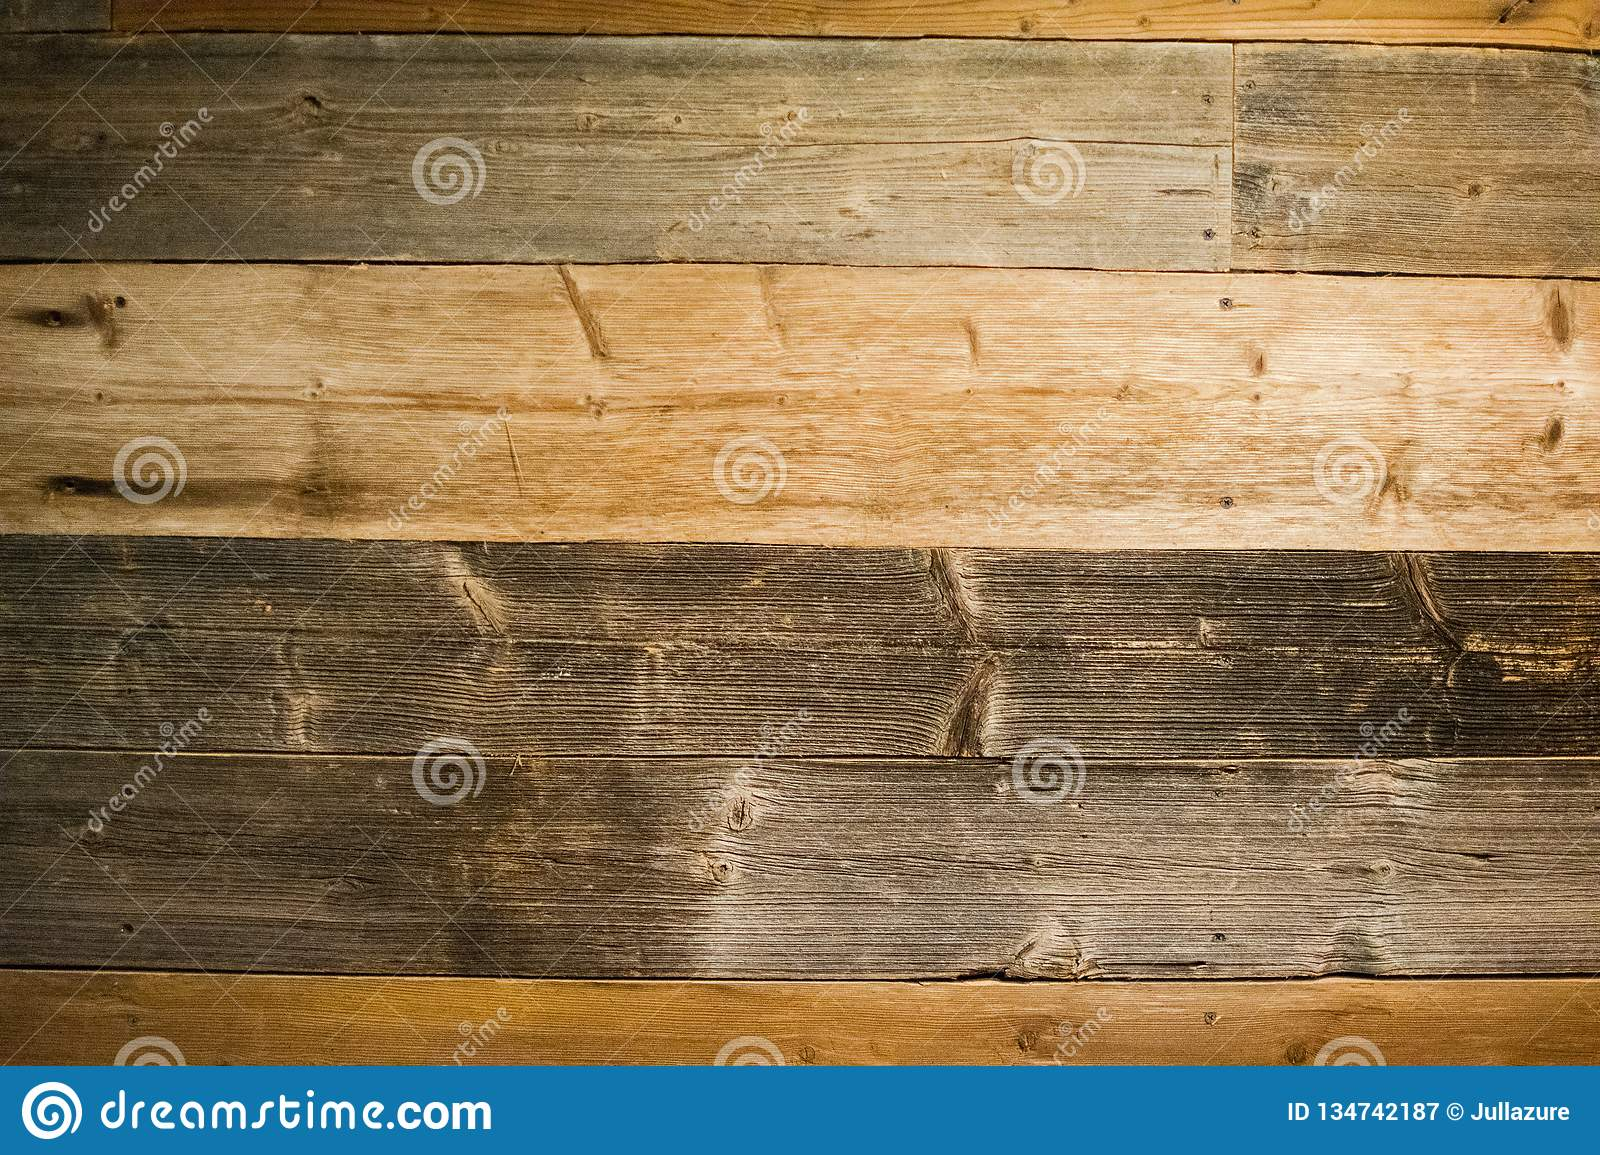 Wood Texture Background Dark Scratched Grunge Cutting Board Old Hard Wood Plank Wall Background Stock Image Image Of Nature Brown 134742187